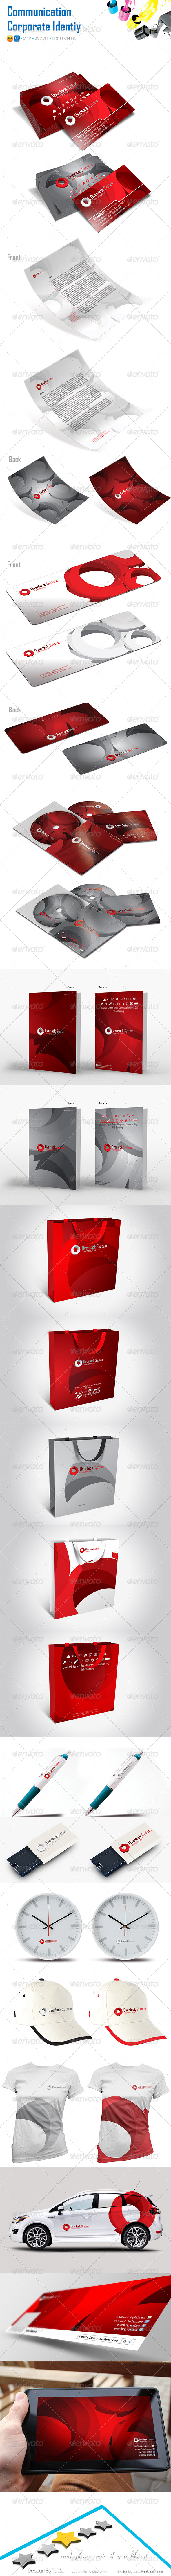 GraphicRiver Overlock Corporate Identity 5430947